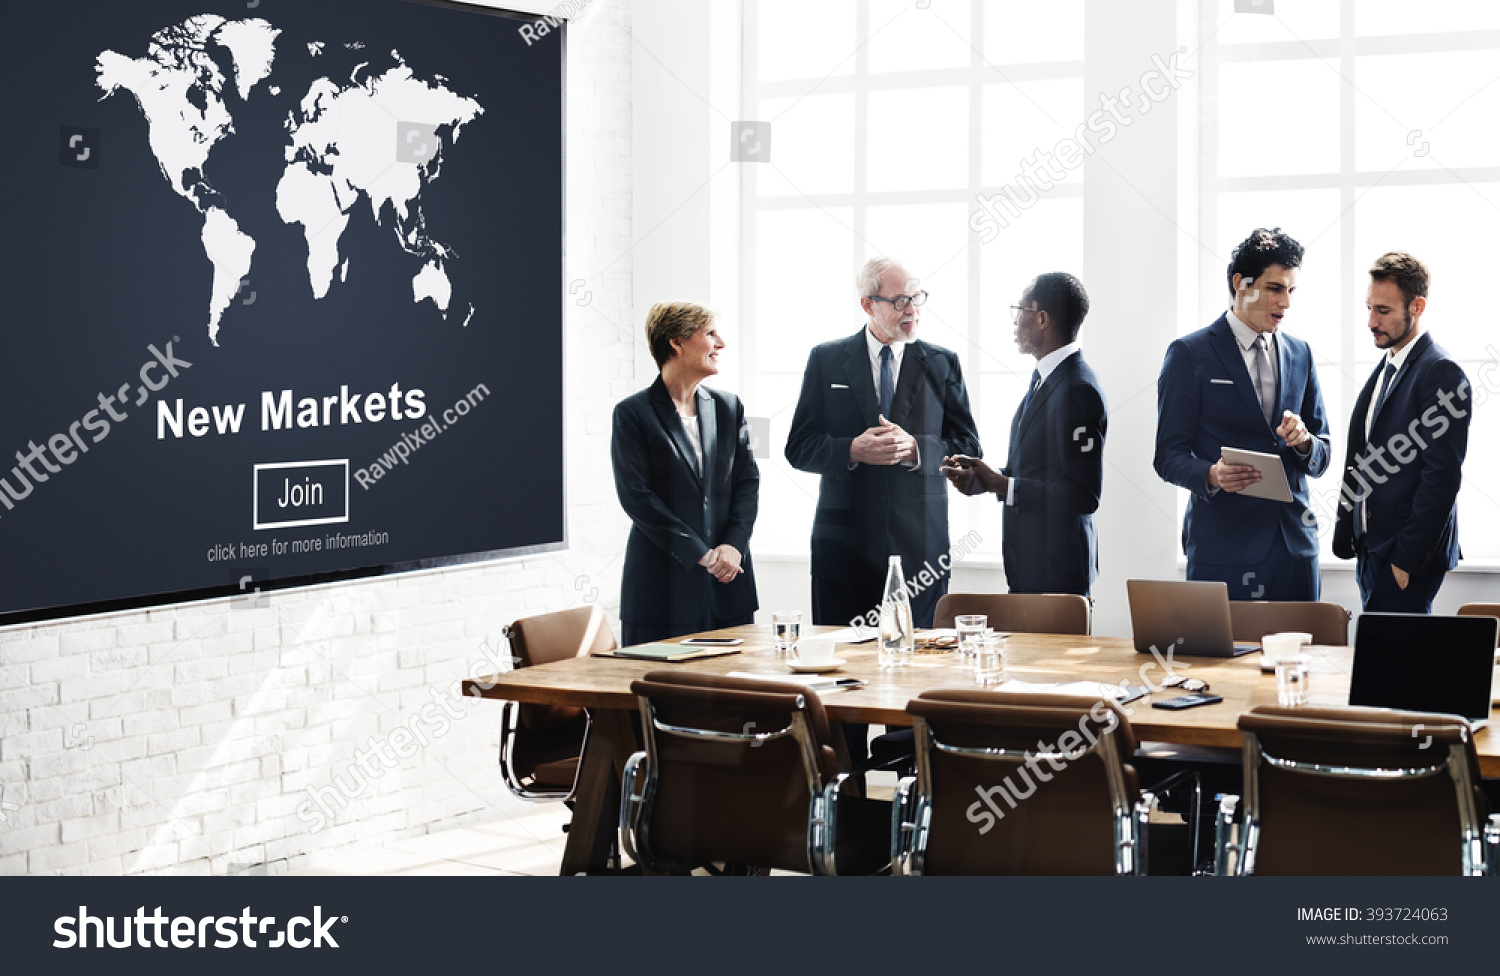 business markets world today Get latest market news, stock market live updates, analysis on bse, sensex, nifty, nse, ipos, forex & commodities know more about personal finance, mutual funds, insurance, bank and loans.